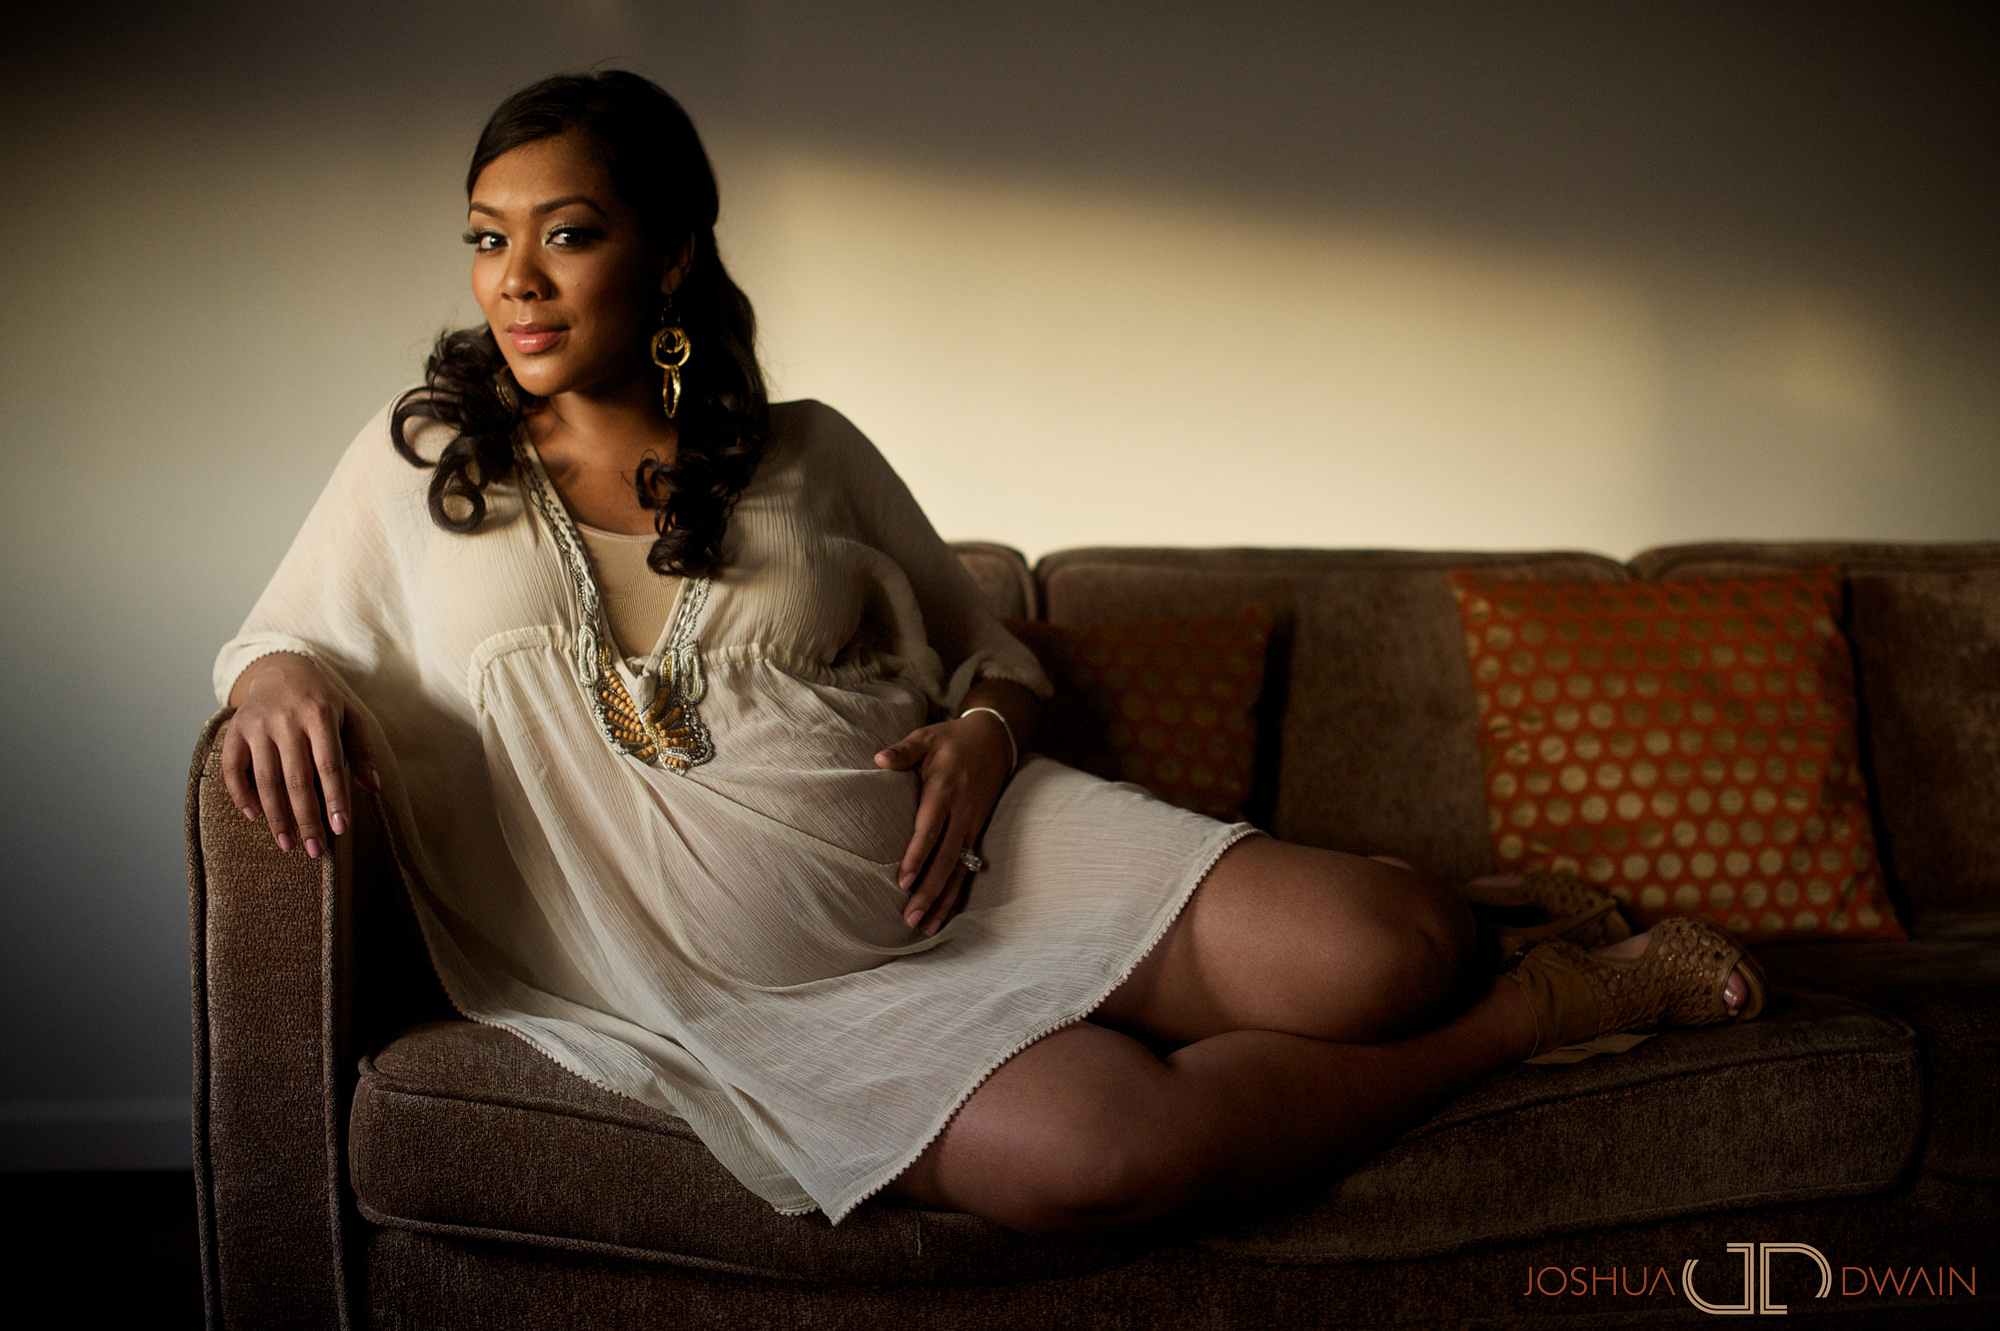 khadeen-ellis-018-new-york-city-maternity-photographer-joshua-dwain-2011-03-18_KD_185